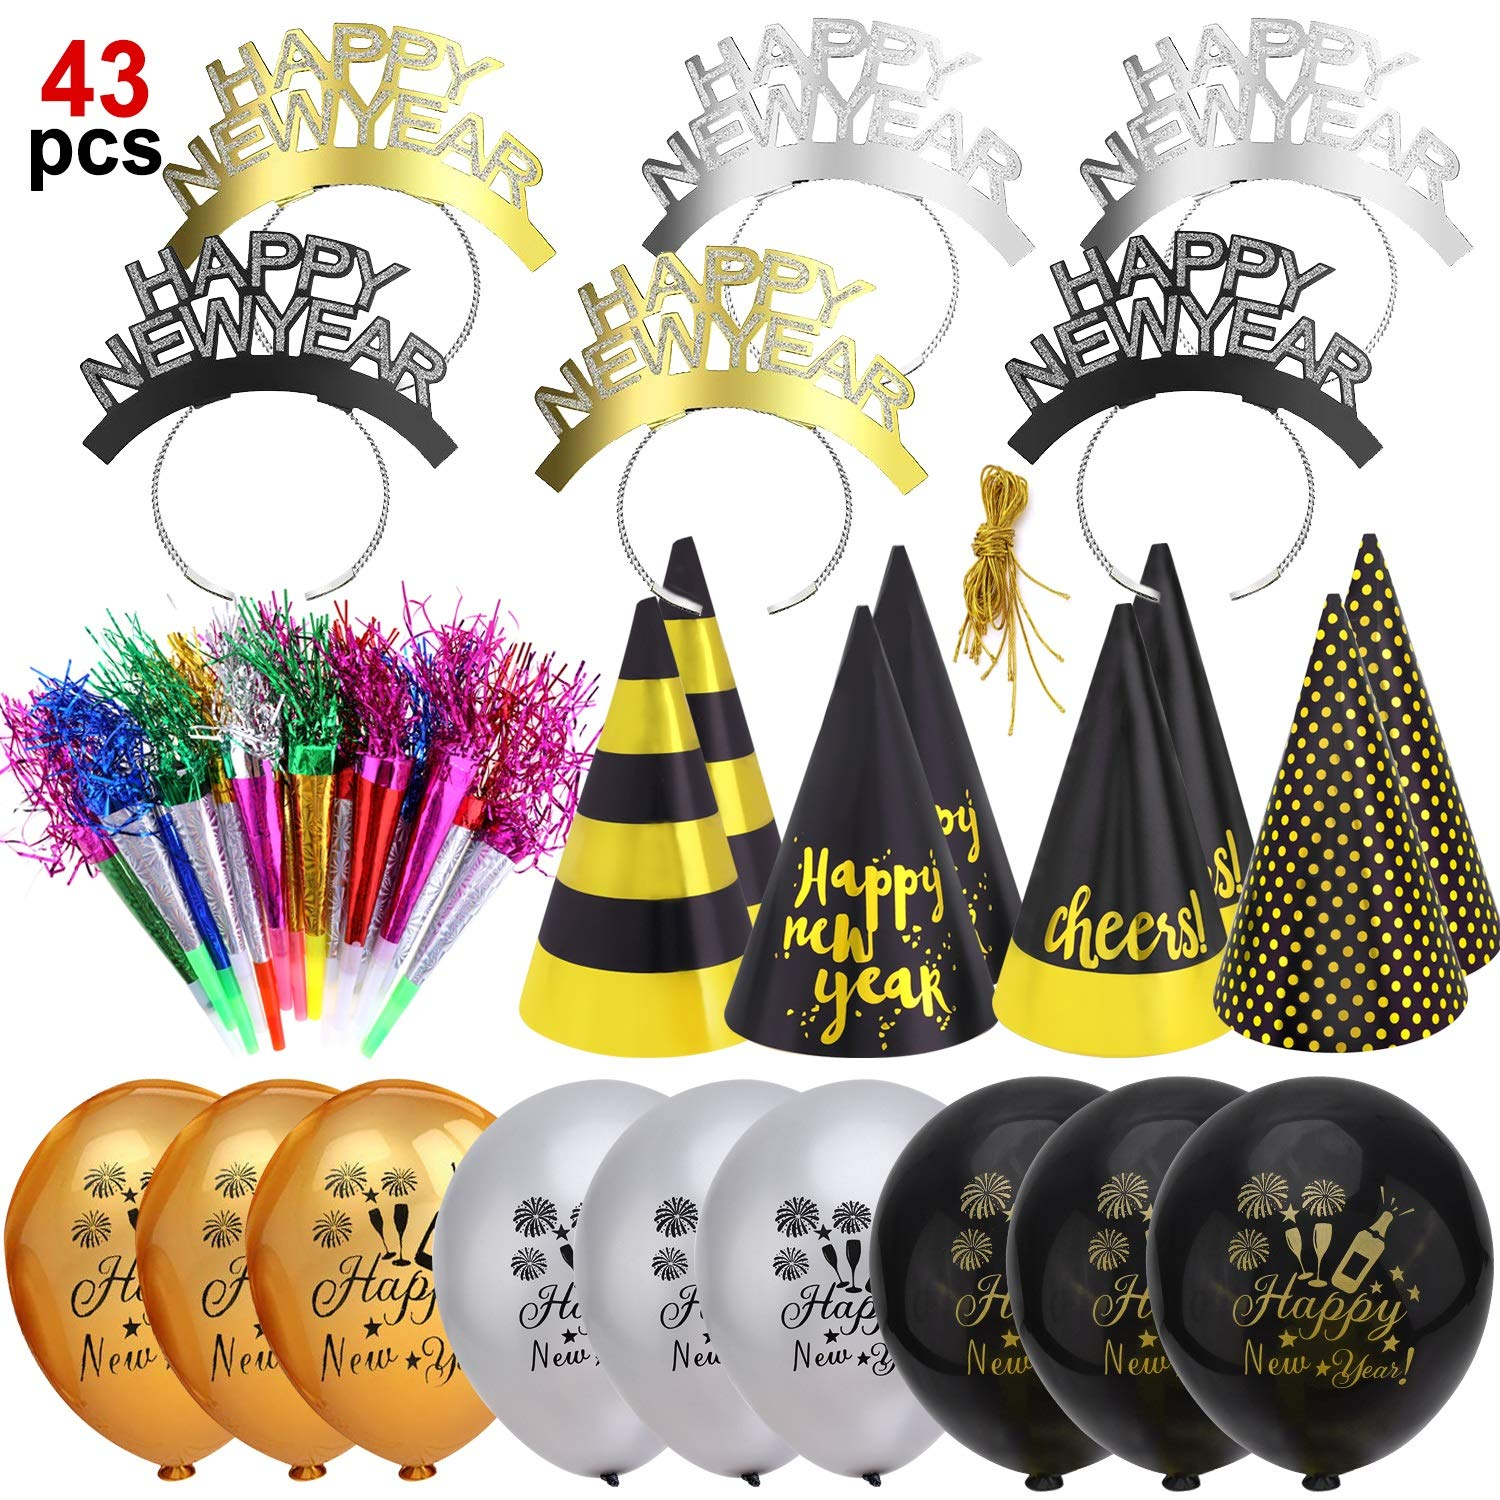 Howaf 2021 New Year Eve Party Supplies 2021 New Year Party Decorations Kit 43pcs Happy New Year Party Headband Horns Hats Blowouts And Balloons For Kids Adults New Year Party Favors Buy